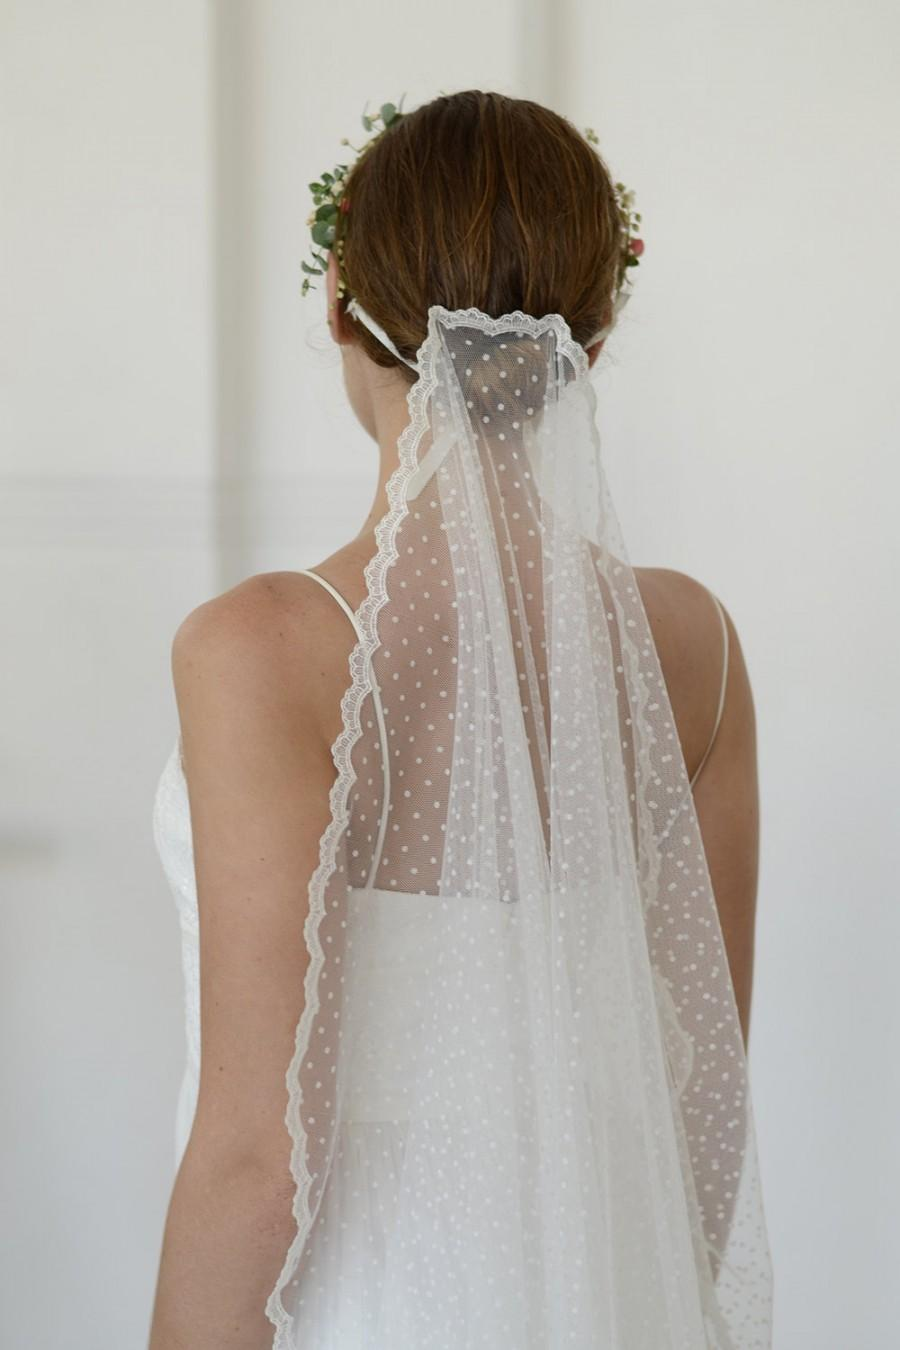 Mariage - Dotted tulle veil, polka dot veil with lace, lace wedding veil, one layer veil, unique veil, fingertip, chapel, cathedral length veil